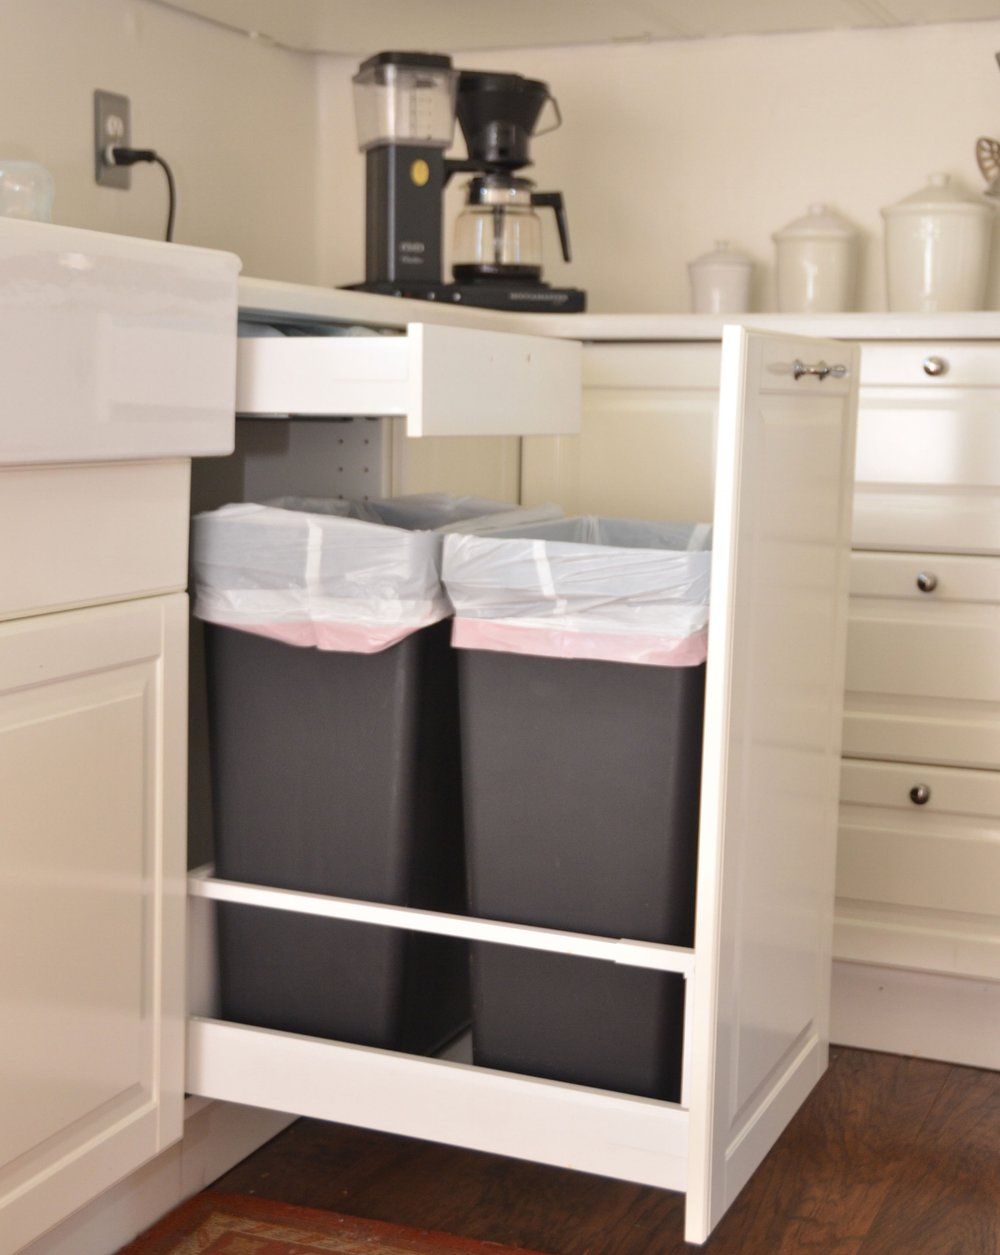 Two Standard Kitchen Sized Trash Cans Fit In This Tall Drawer From Ikea.  Trash